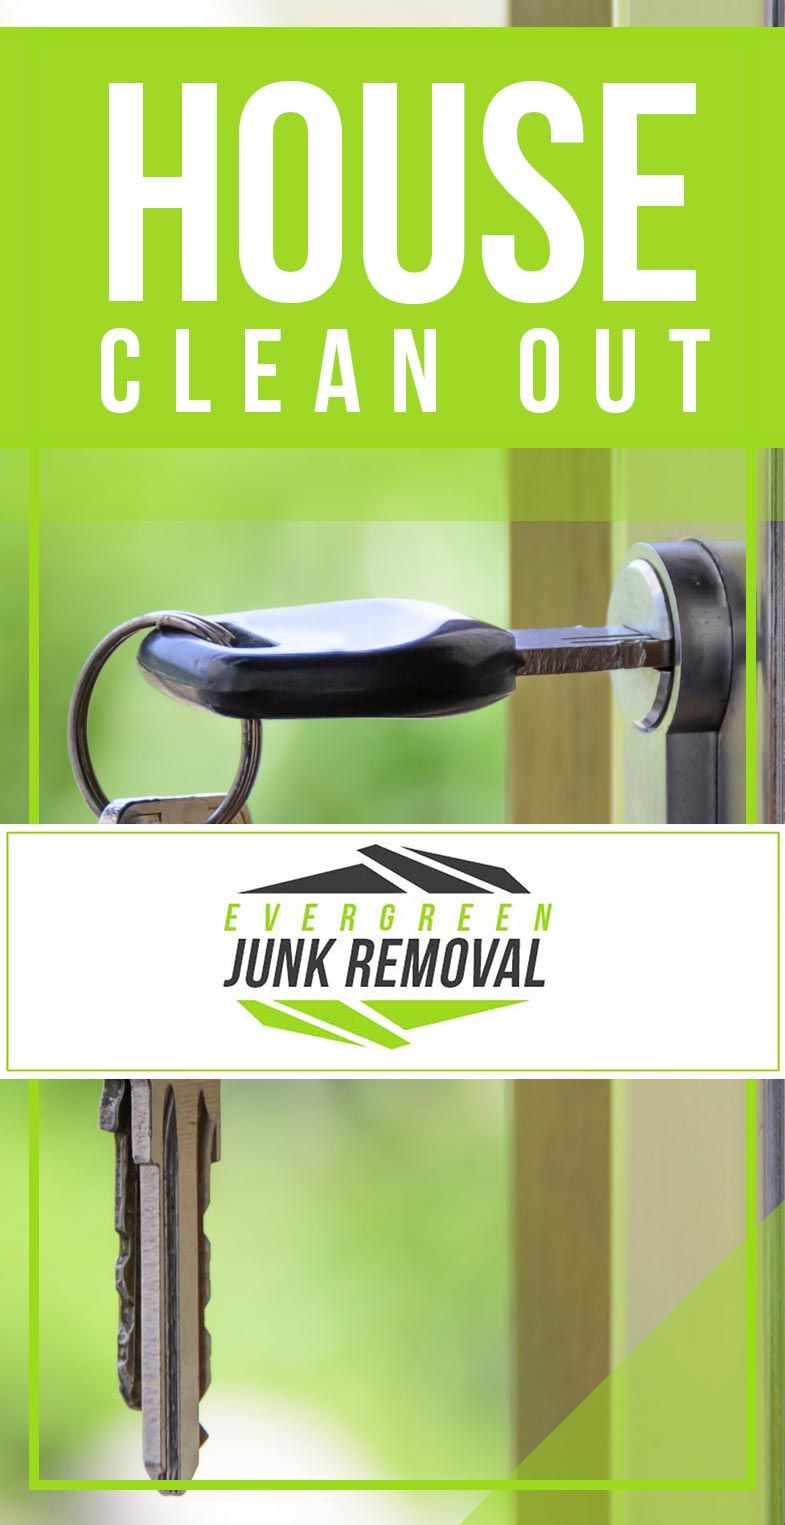 Junk Removal North Palm Beach House Clean Out